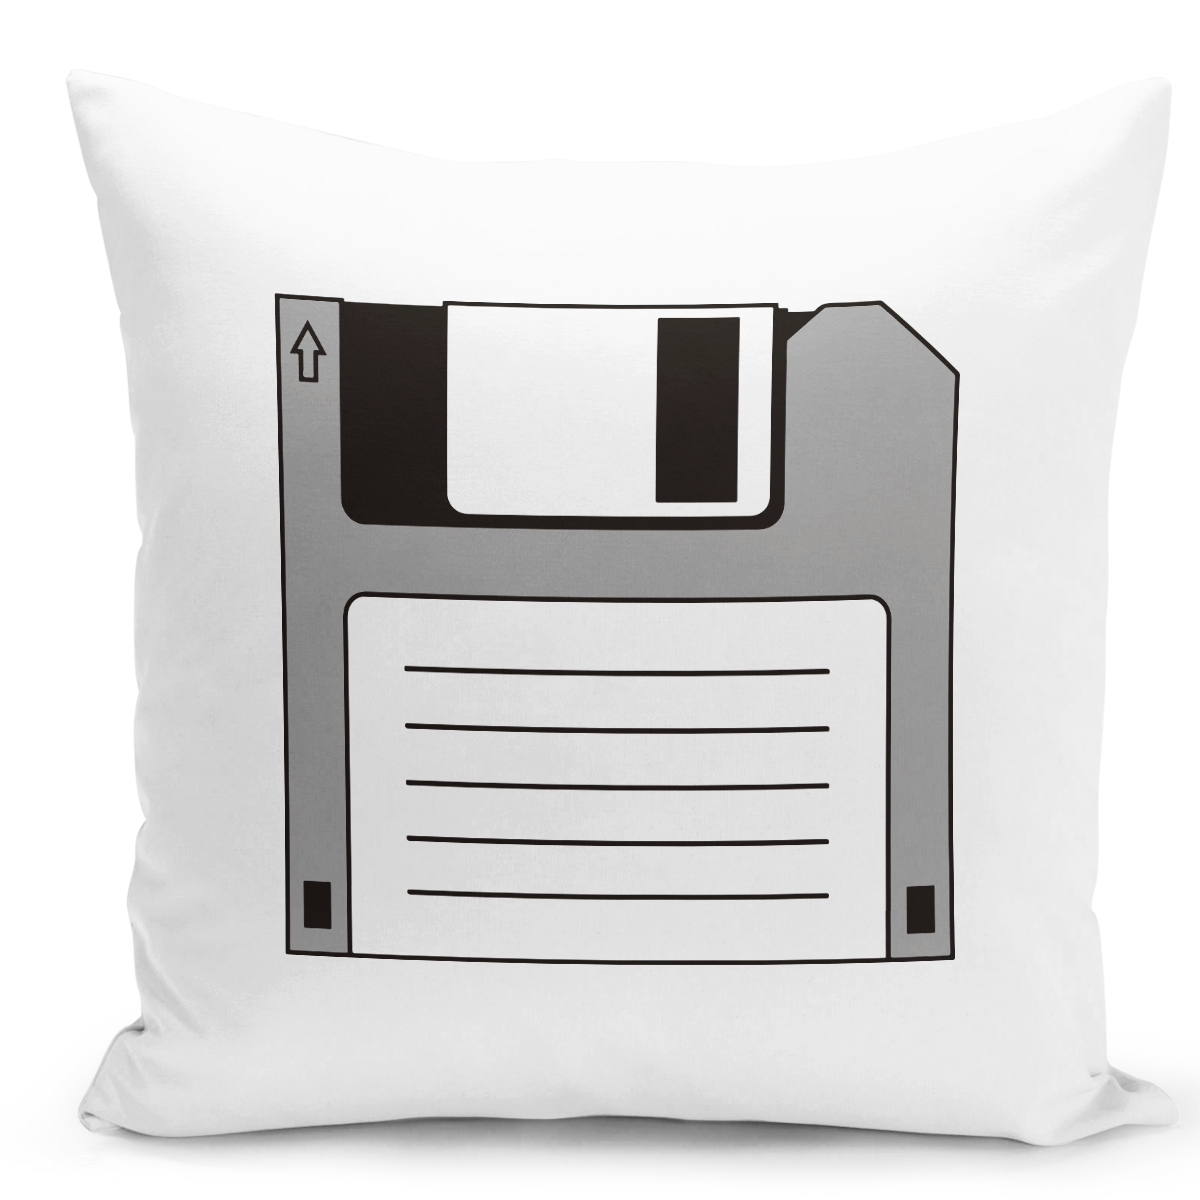 White-Throw-Pillow-Vintage-Old-Floppy-Disc---Durable-White-16-x-16-inch-Square-Home-Accent-Pillow-Sofa-Cushion-